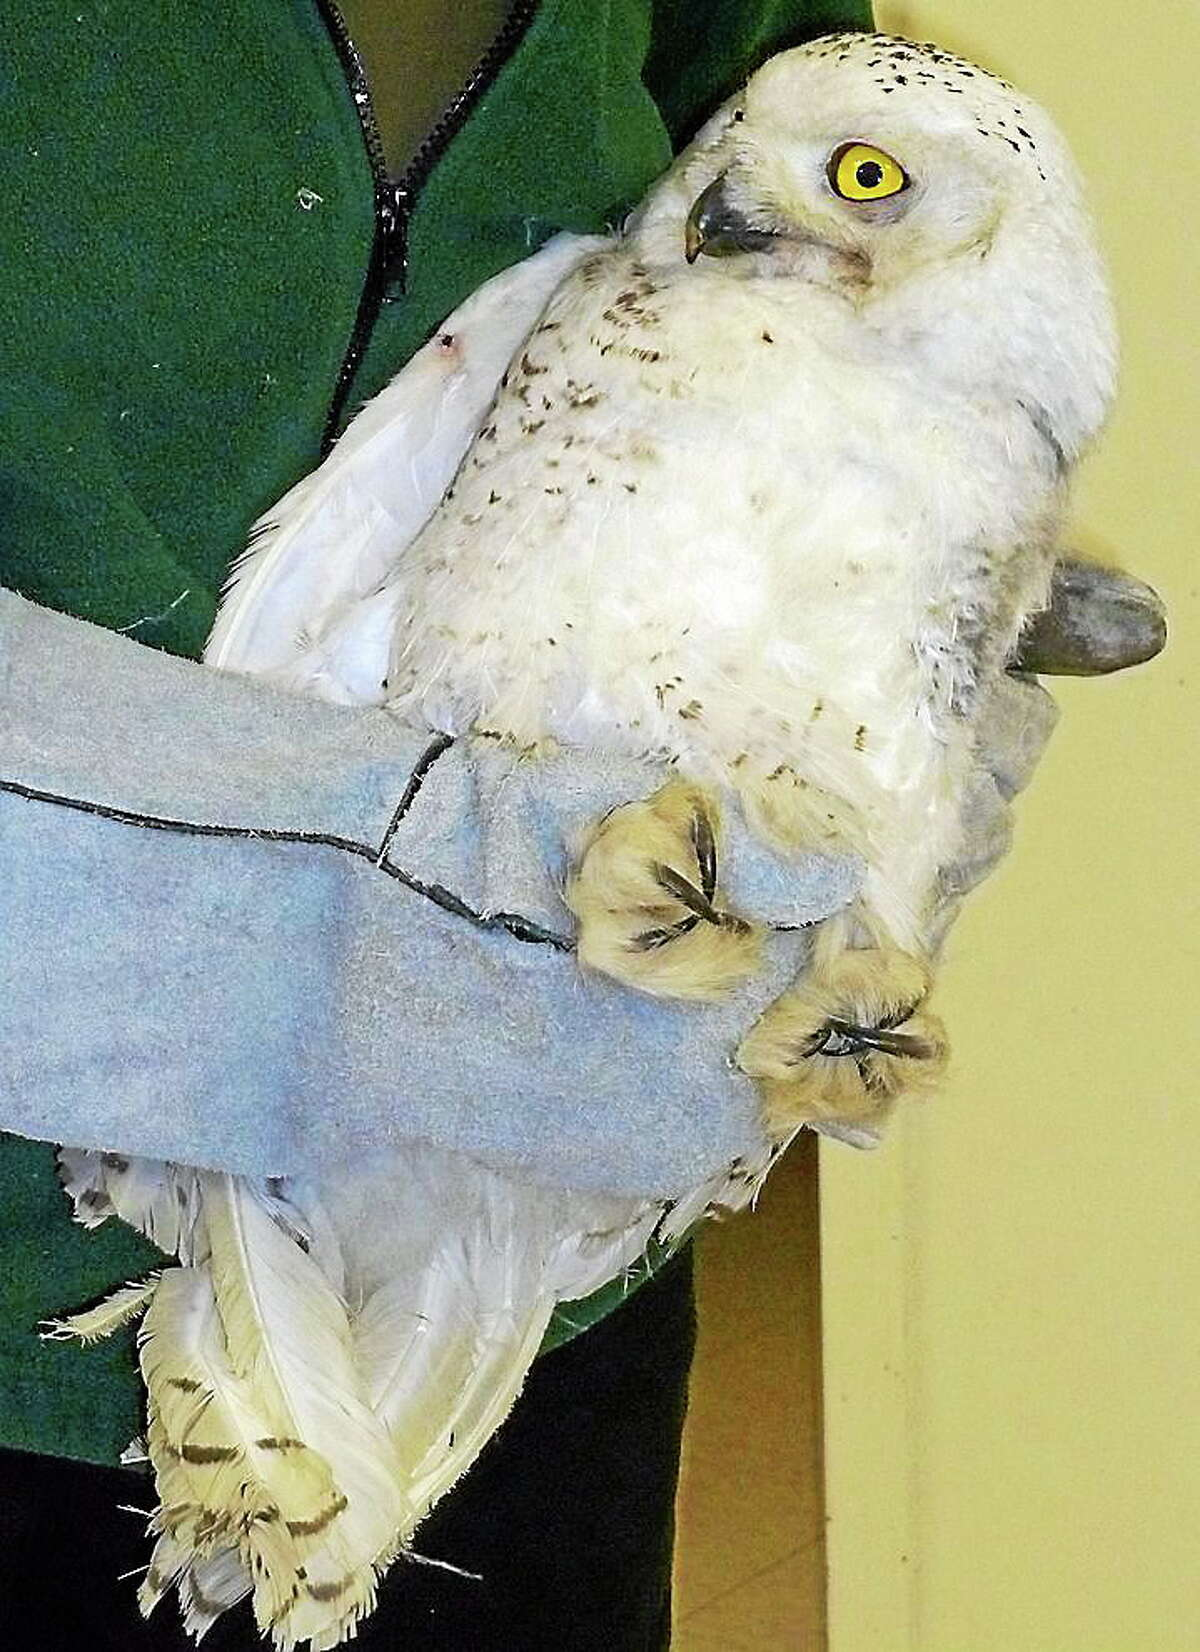 This snowy owl got his feathers fixed.